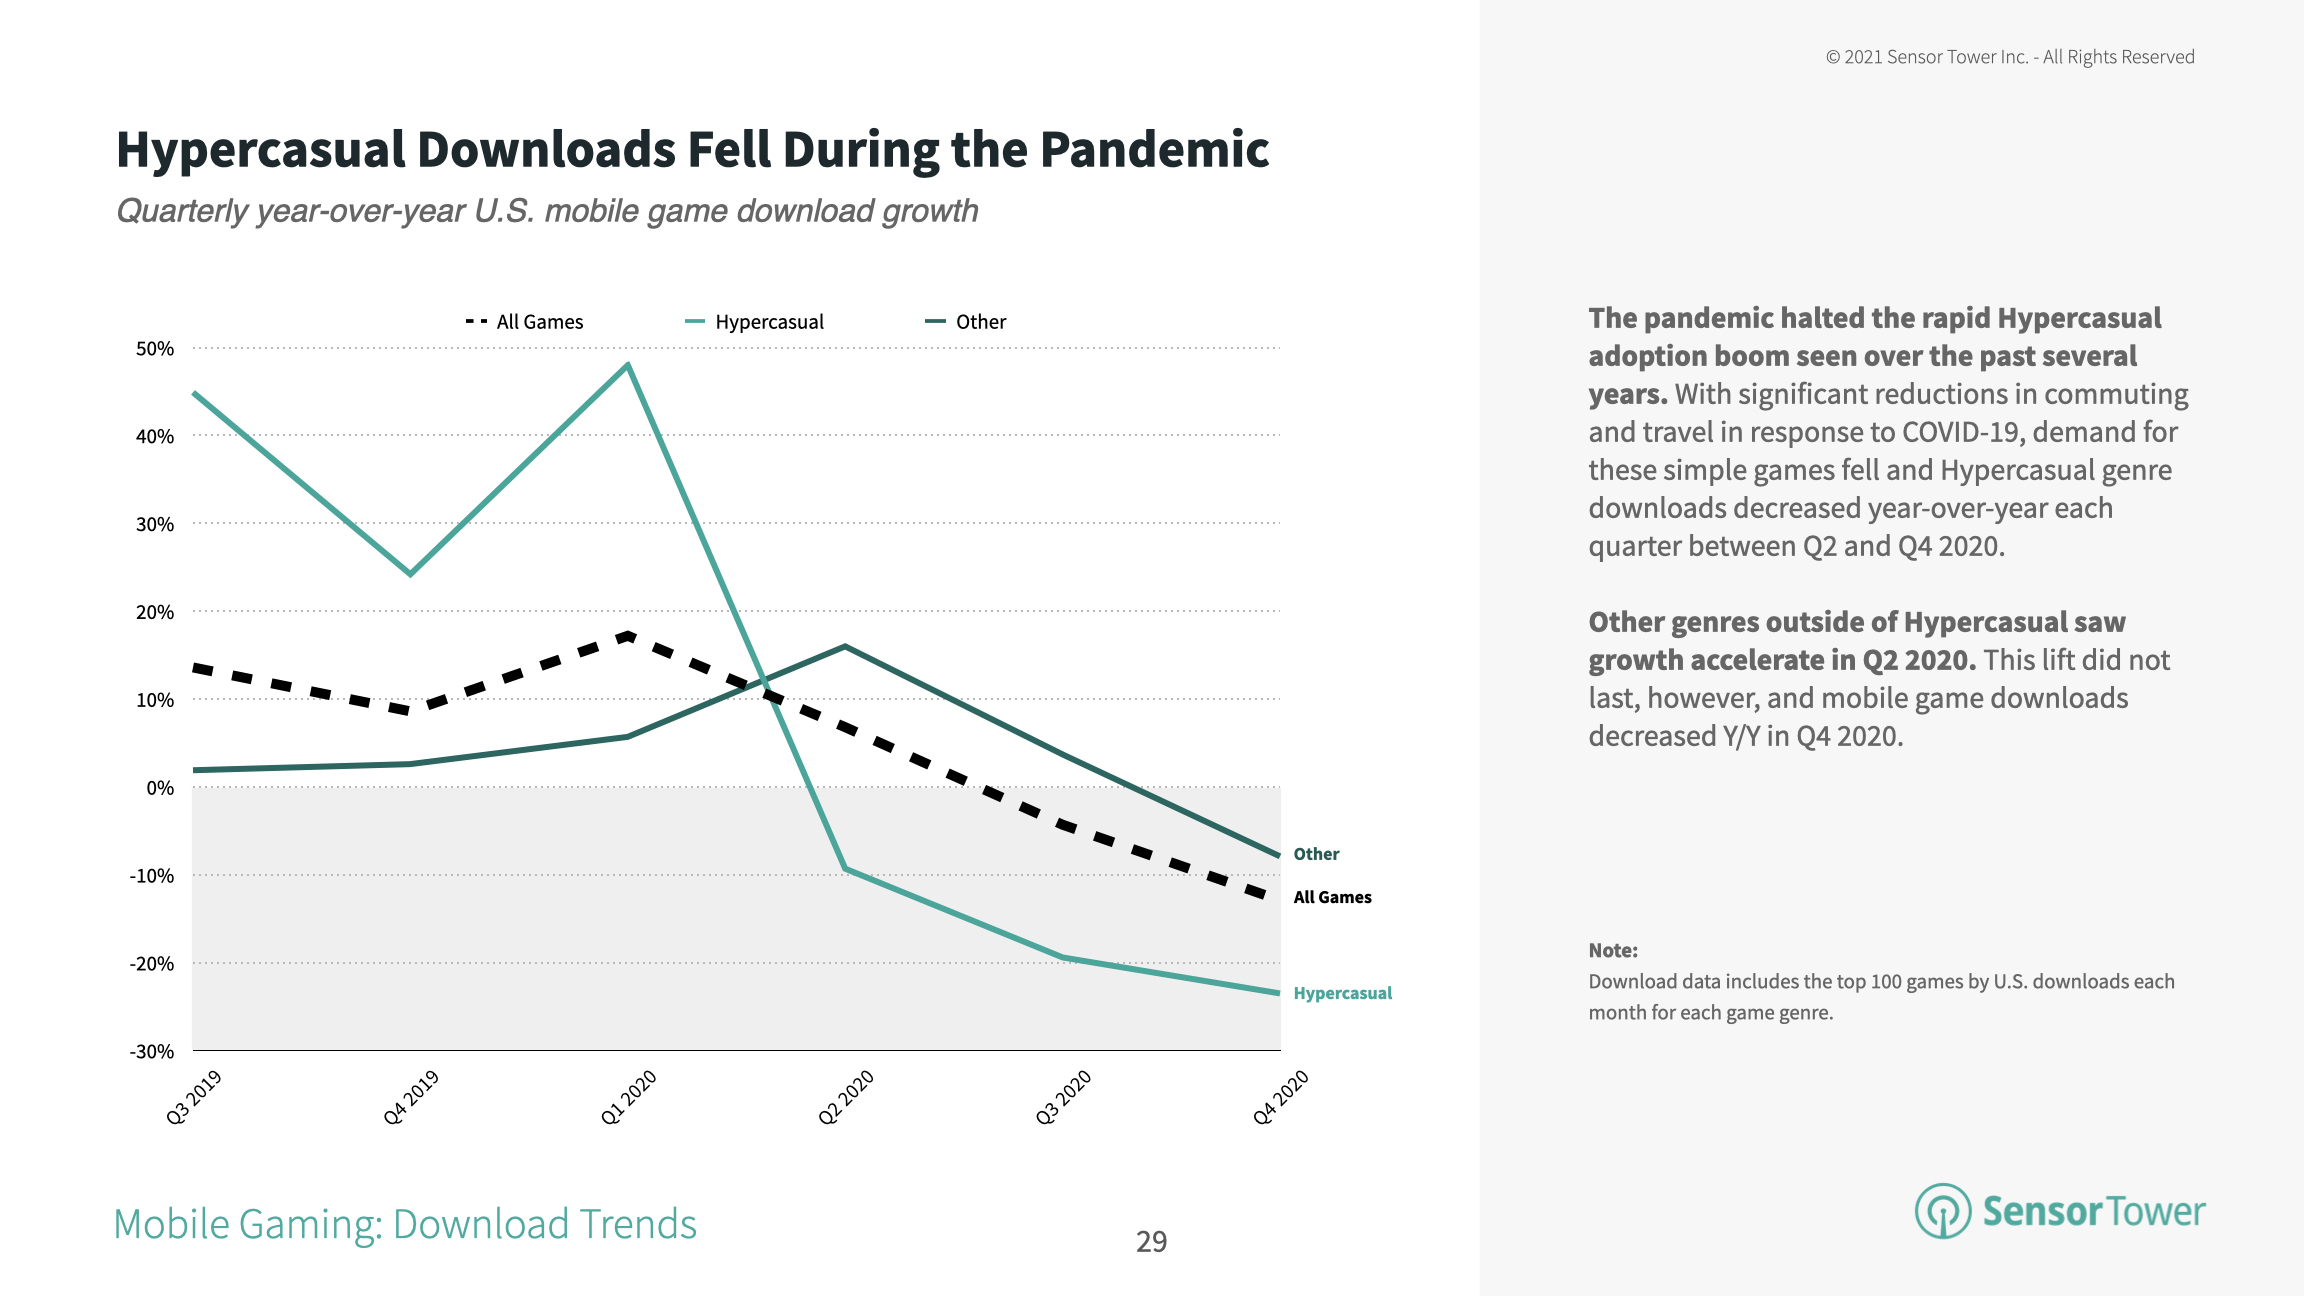 Hypercasual game installs declined as consumers no longer commuted to work due to COVID-19.